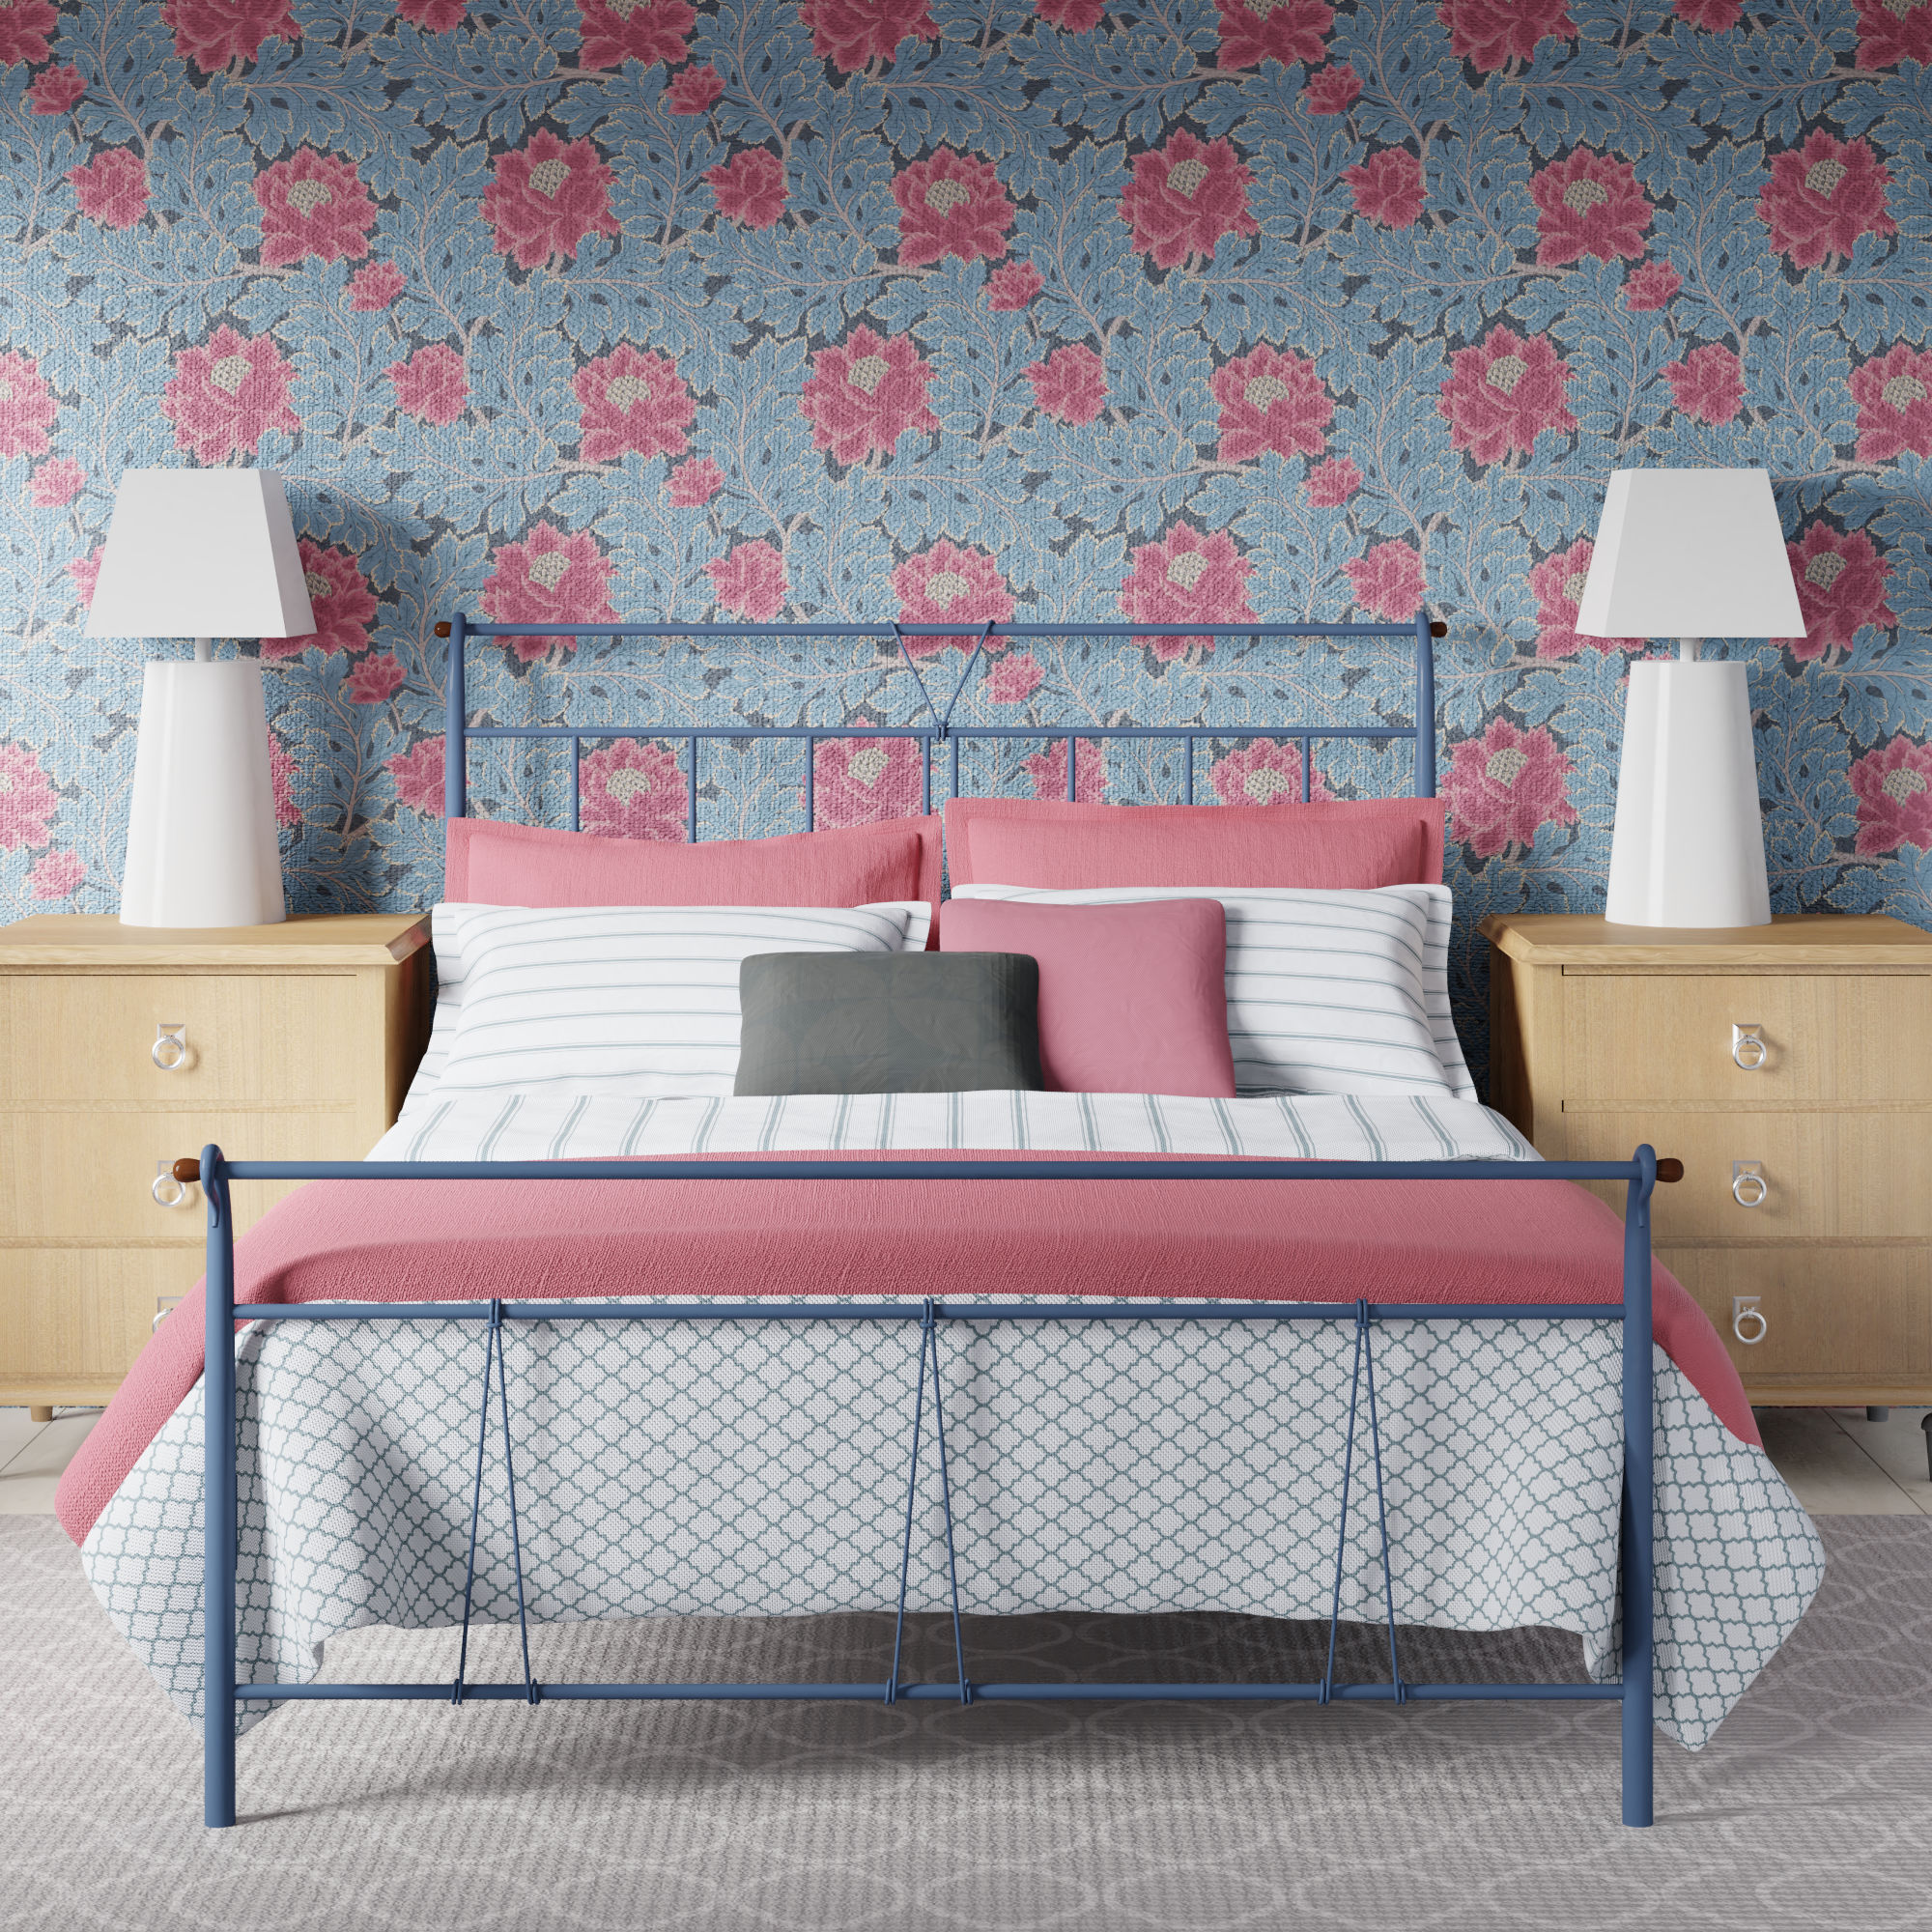 Pellini iron bed frame inspired by grandmillenial design